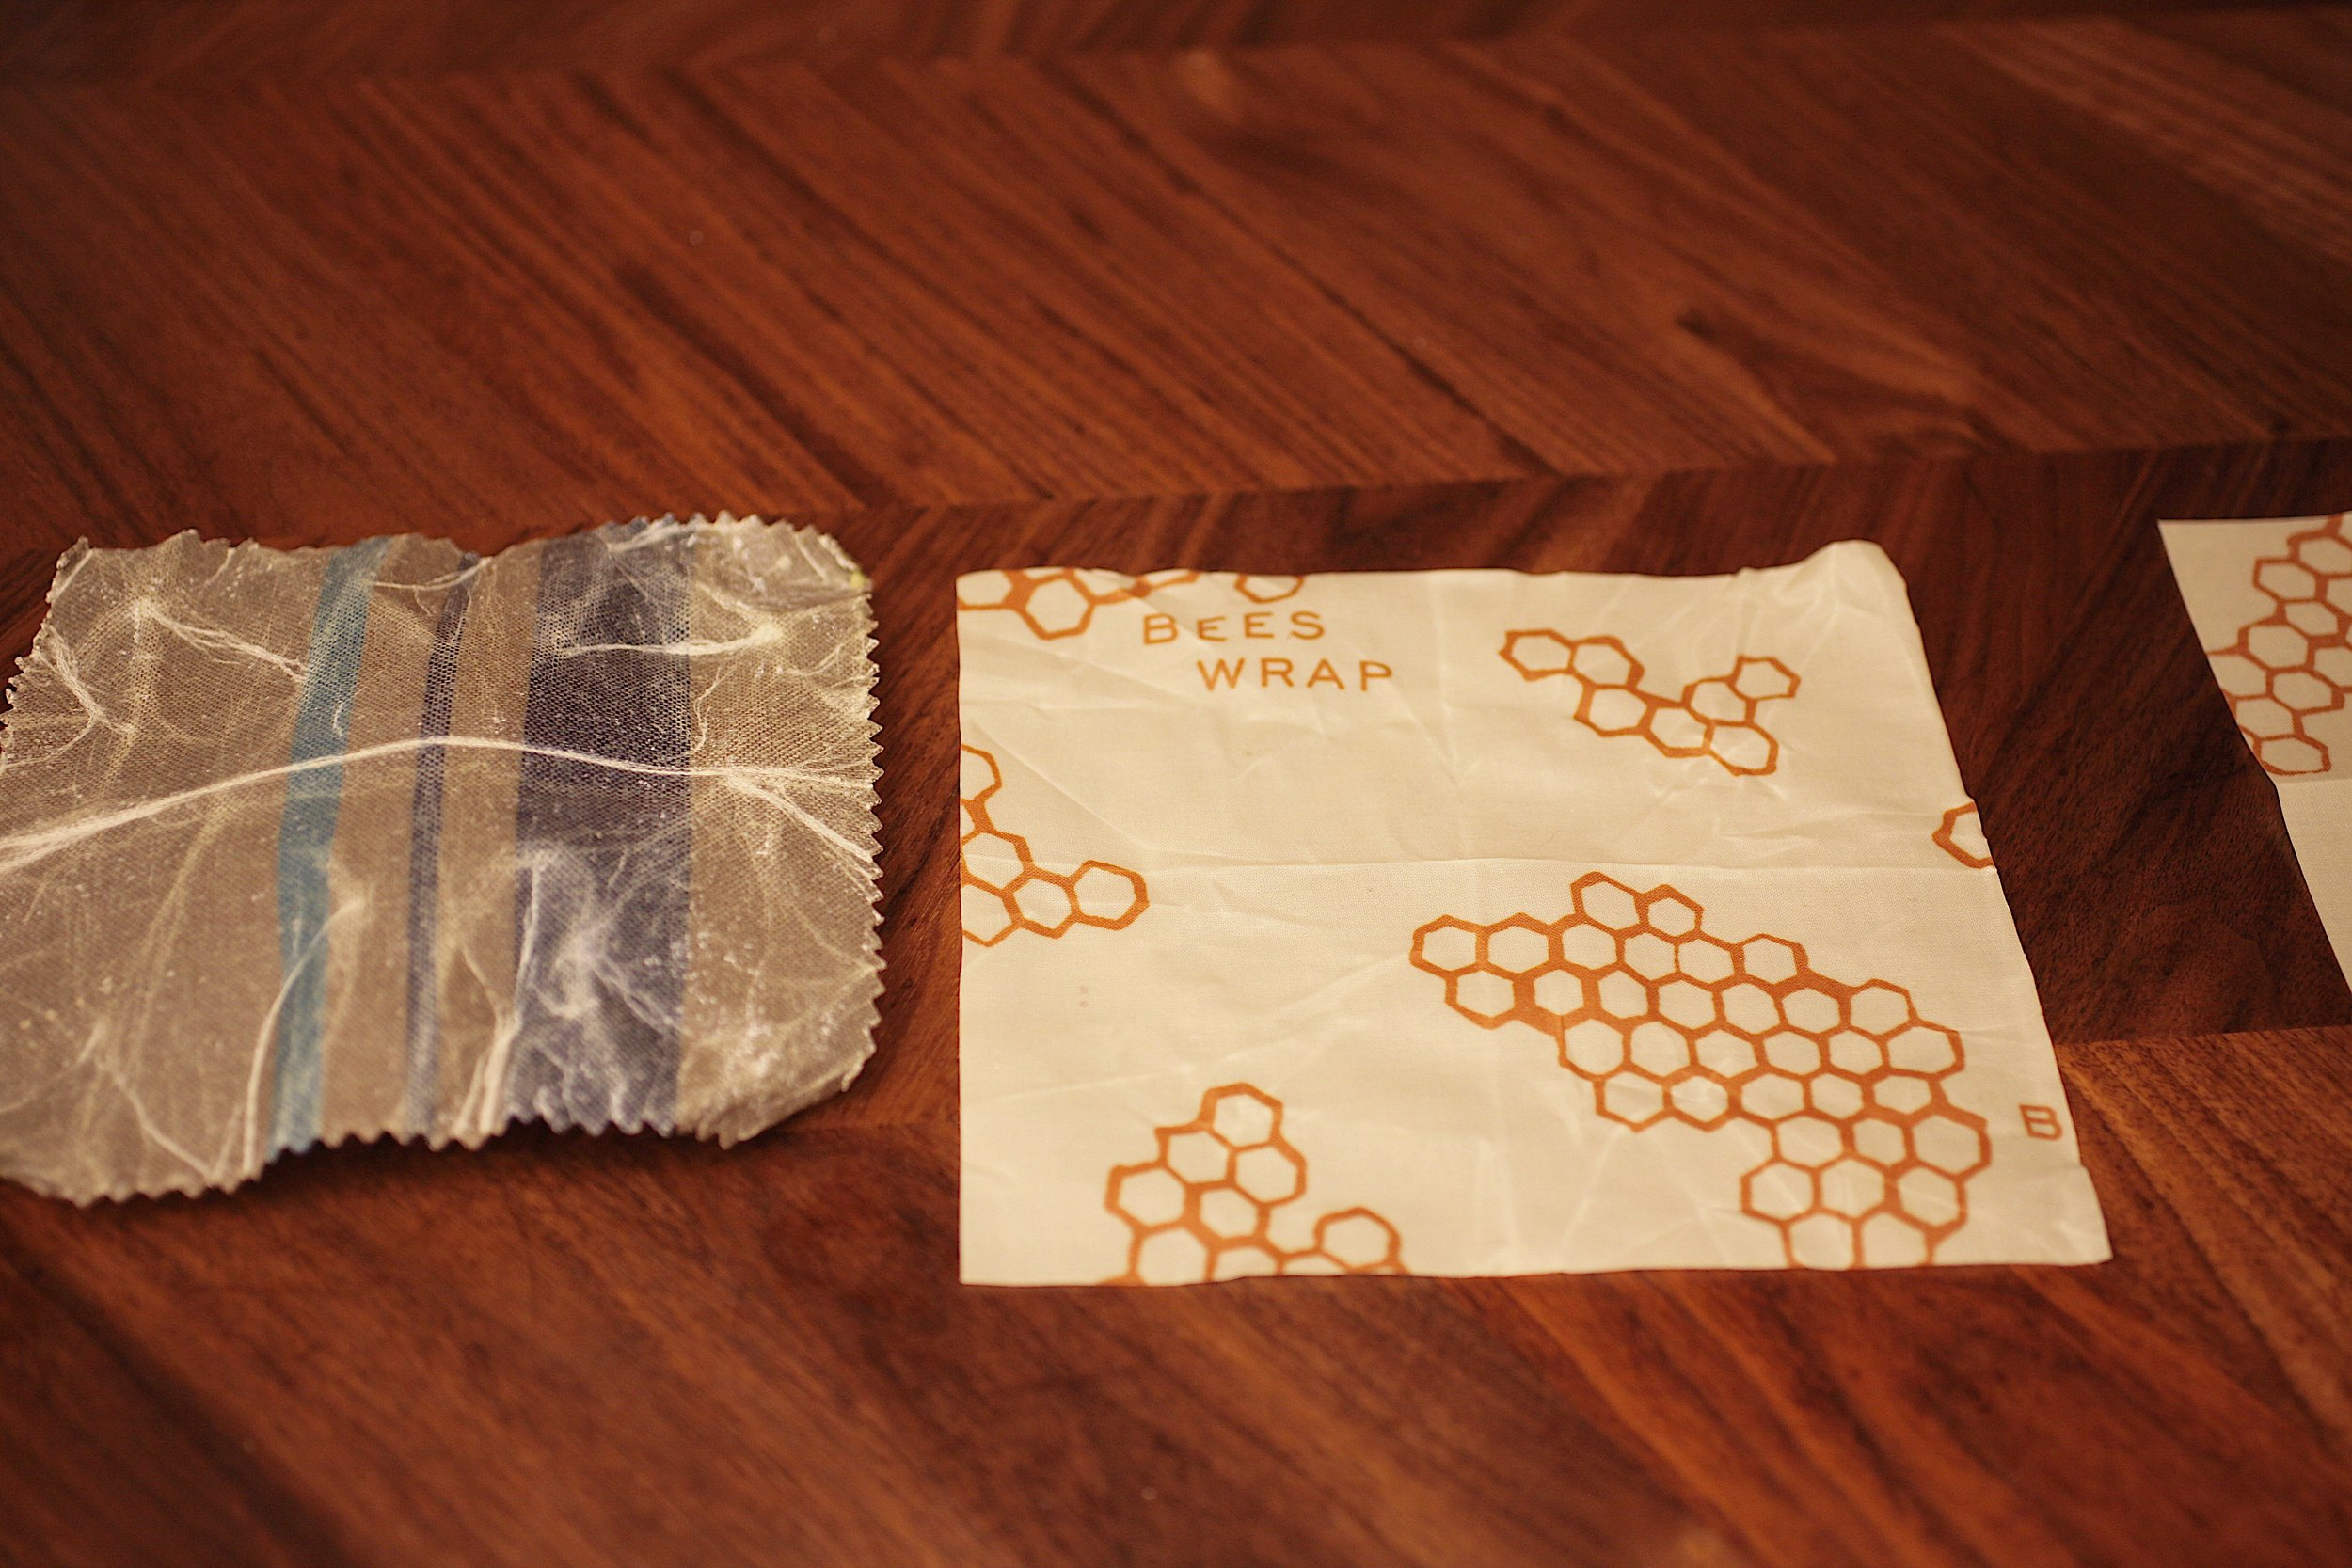 The Trader Joe's Waxed Cotton Food Wraps are stiff and very hard to use. They leave a sticky-waxy substance on your hands. The Bee's Wraps are malleable, thin, and are much more user-friendly.